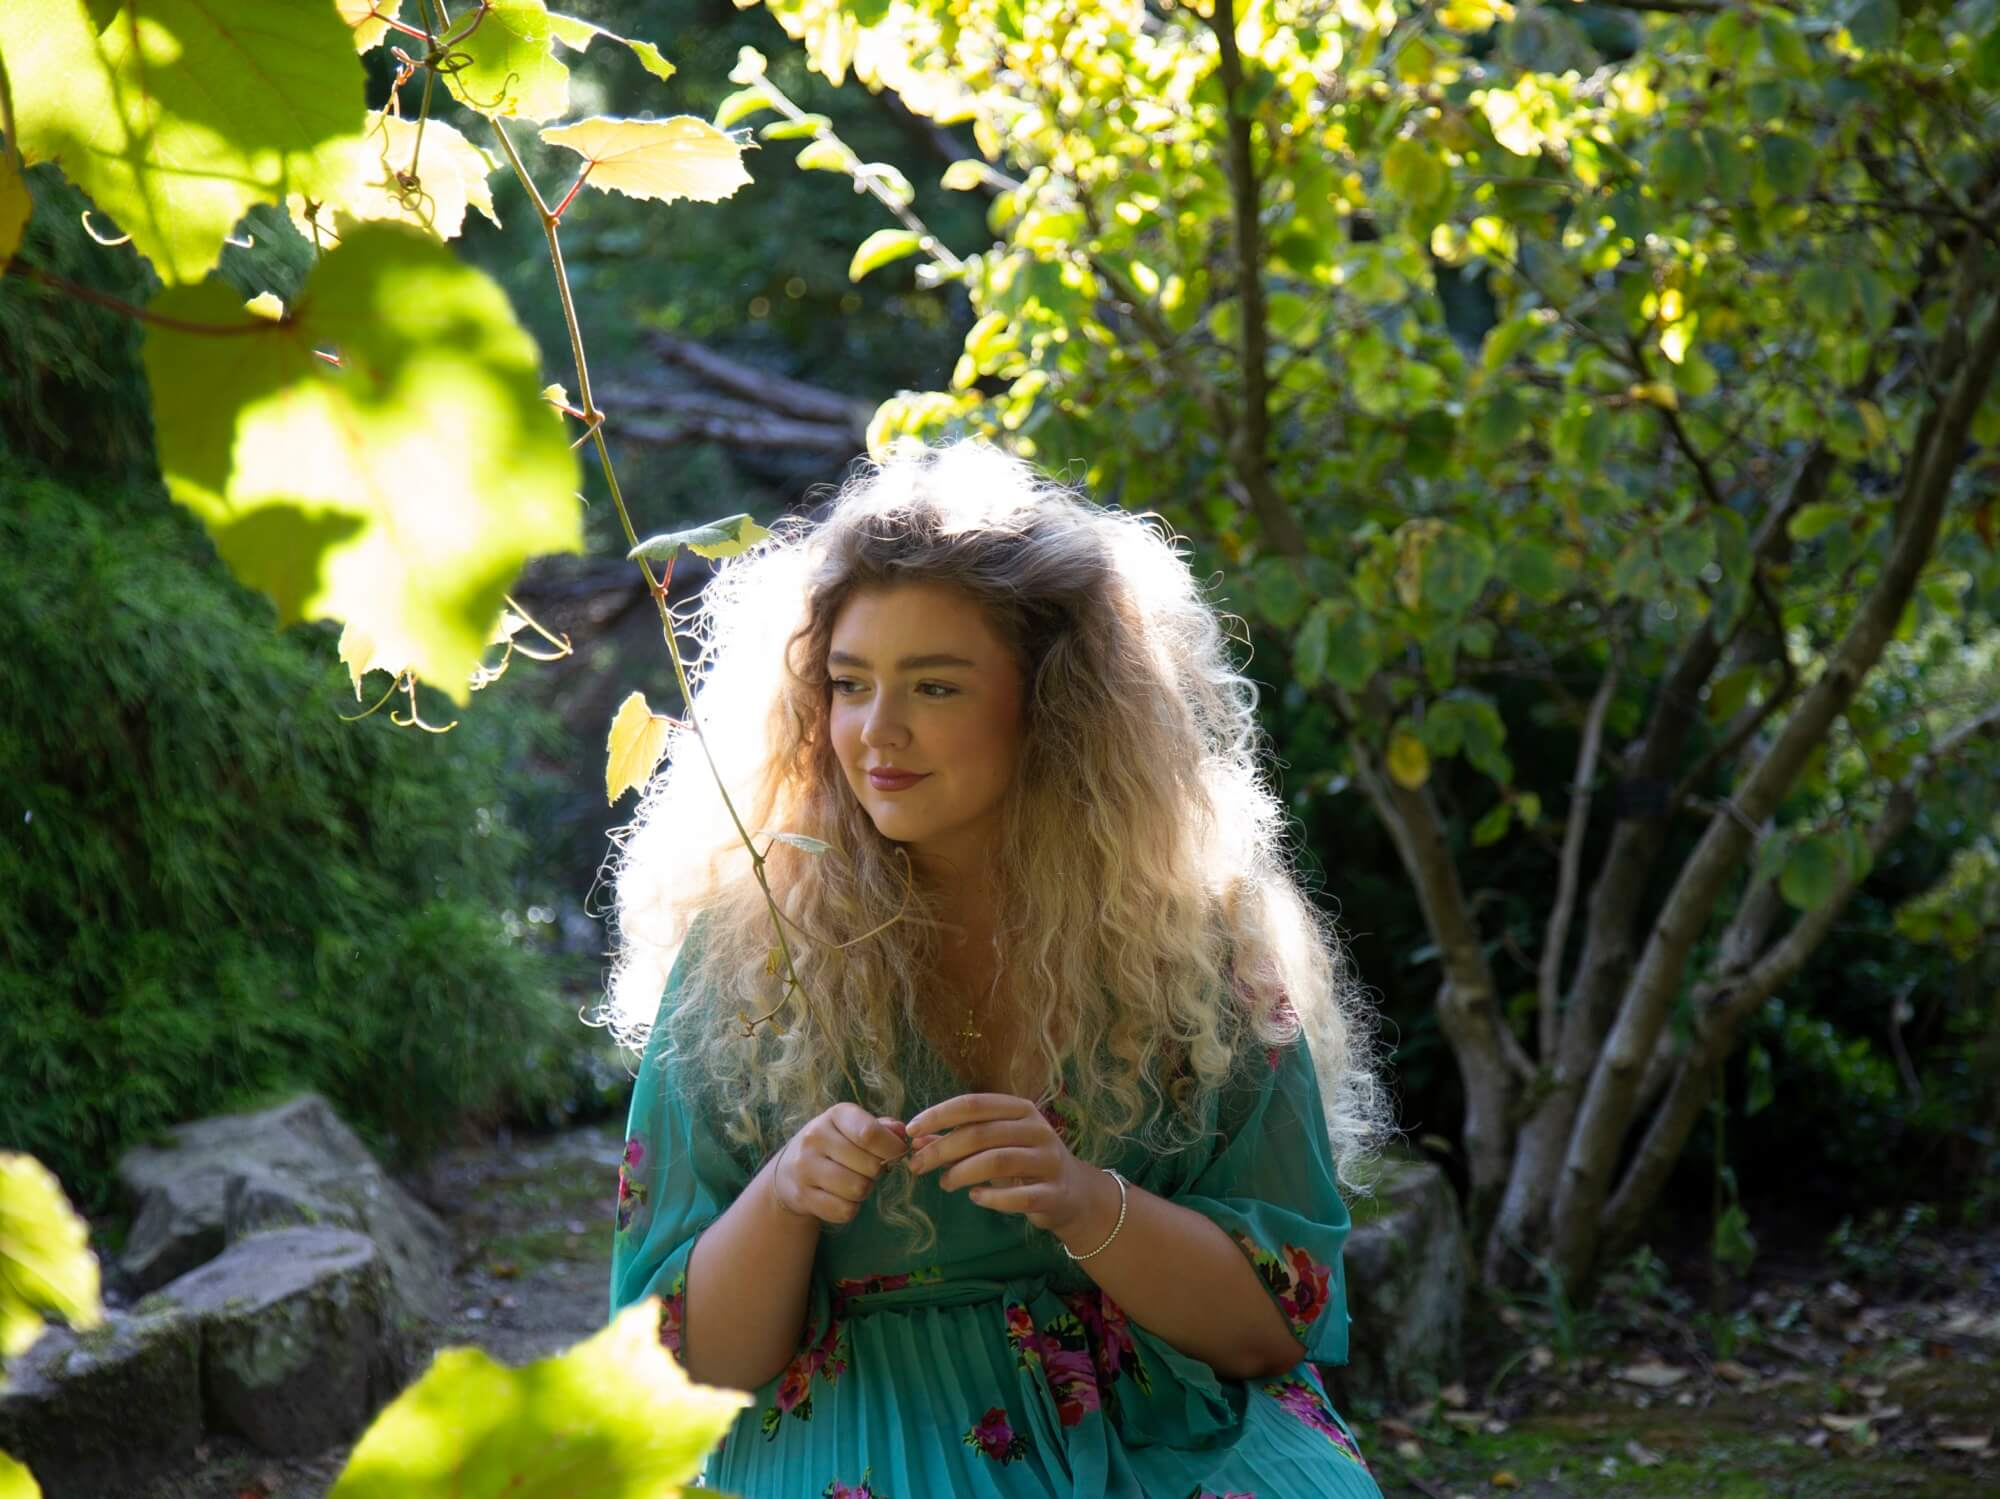 Singer and songwriter LYDIAH sitting in a woodland